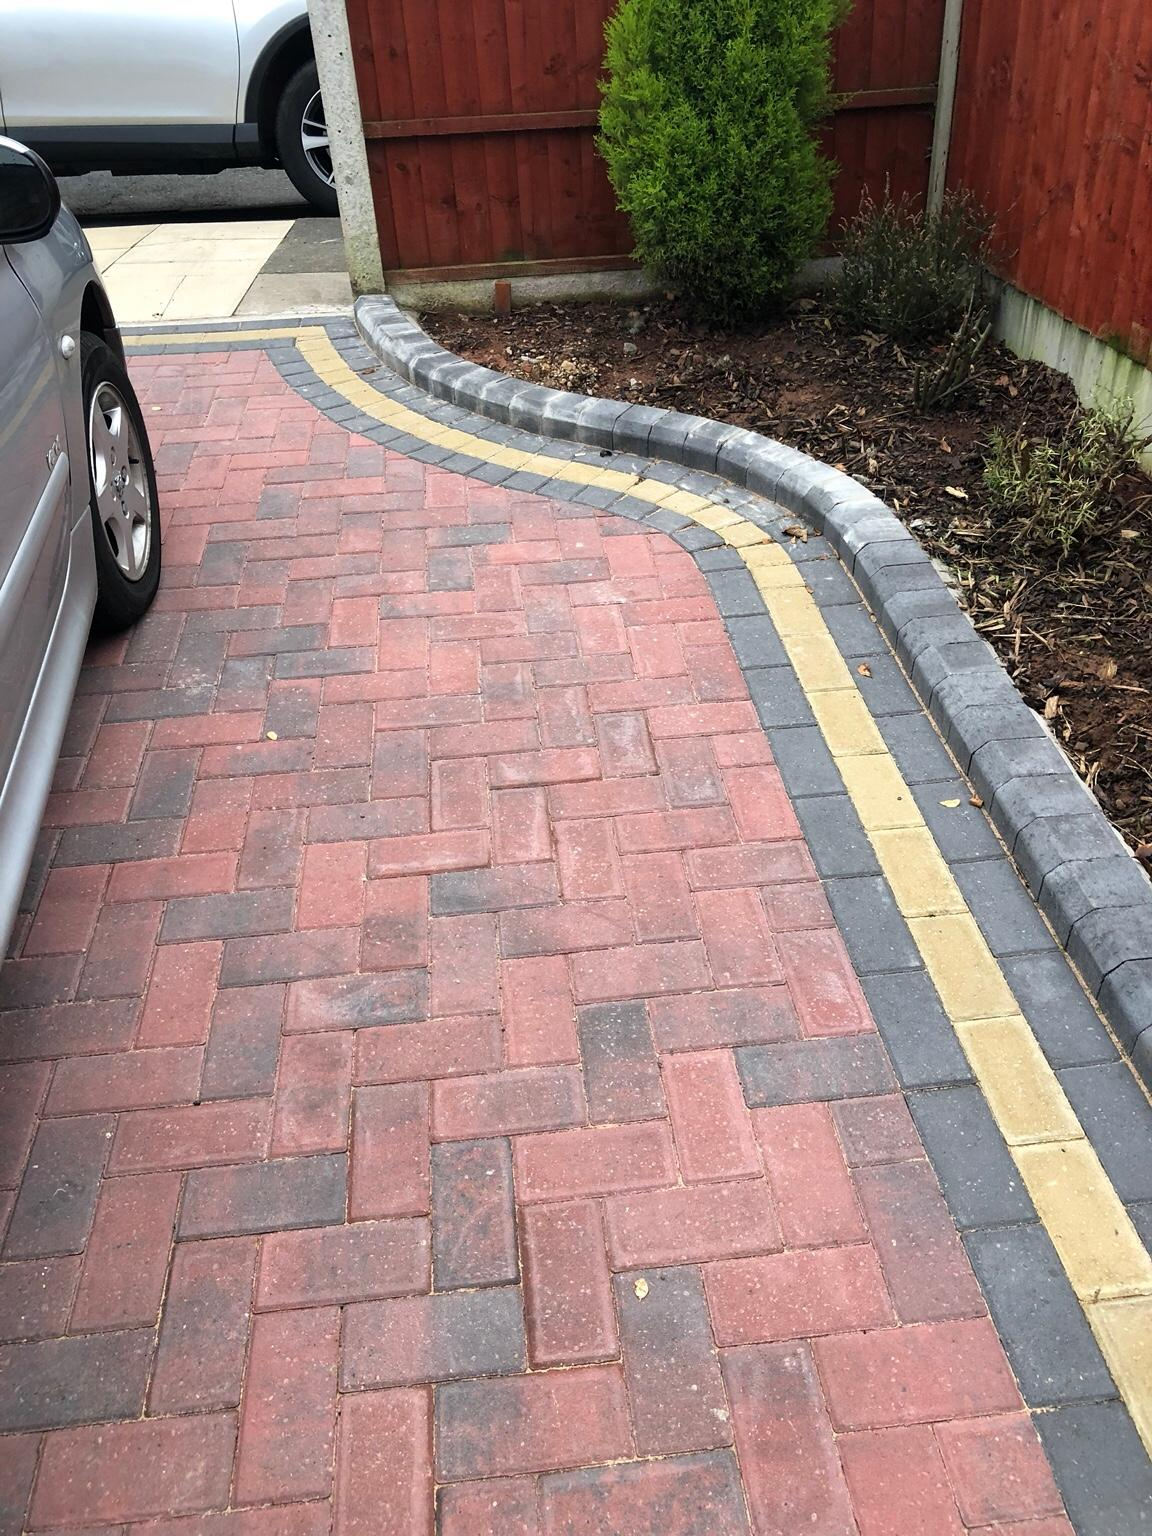 Driveway Kerbs High Block Paving Kerb Edgings in Brindle Garden Collected